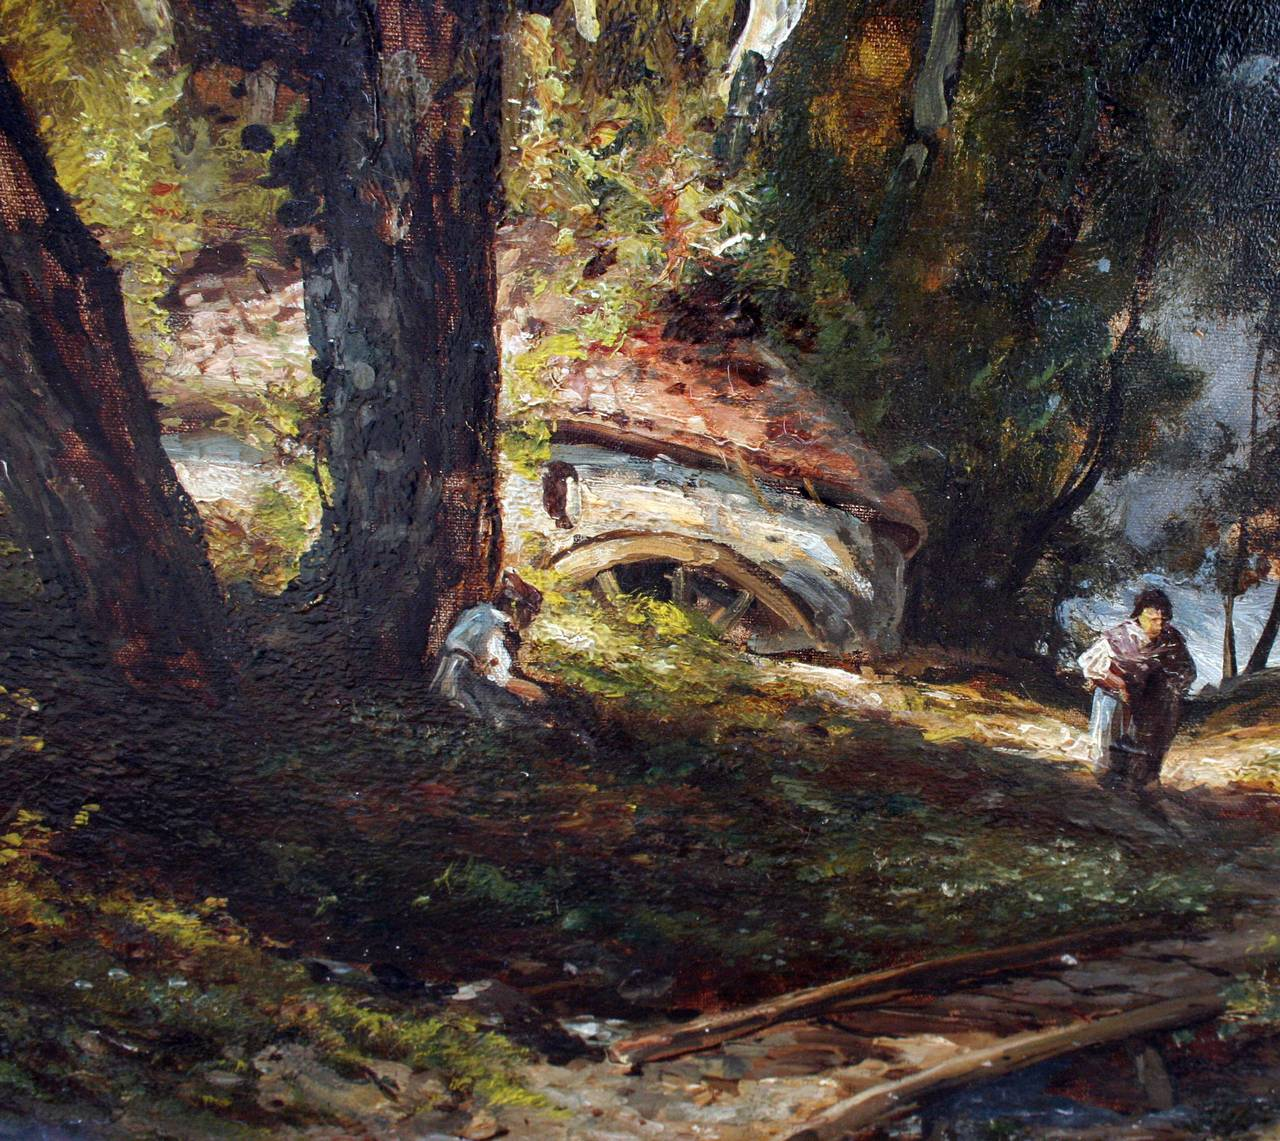 Barbizon Foret de Chantilly: after Narcissus Diaz de la Pena   - Barbizon School Painting by Unknown